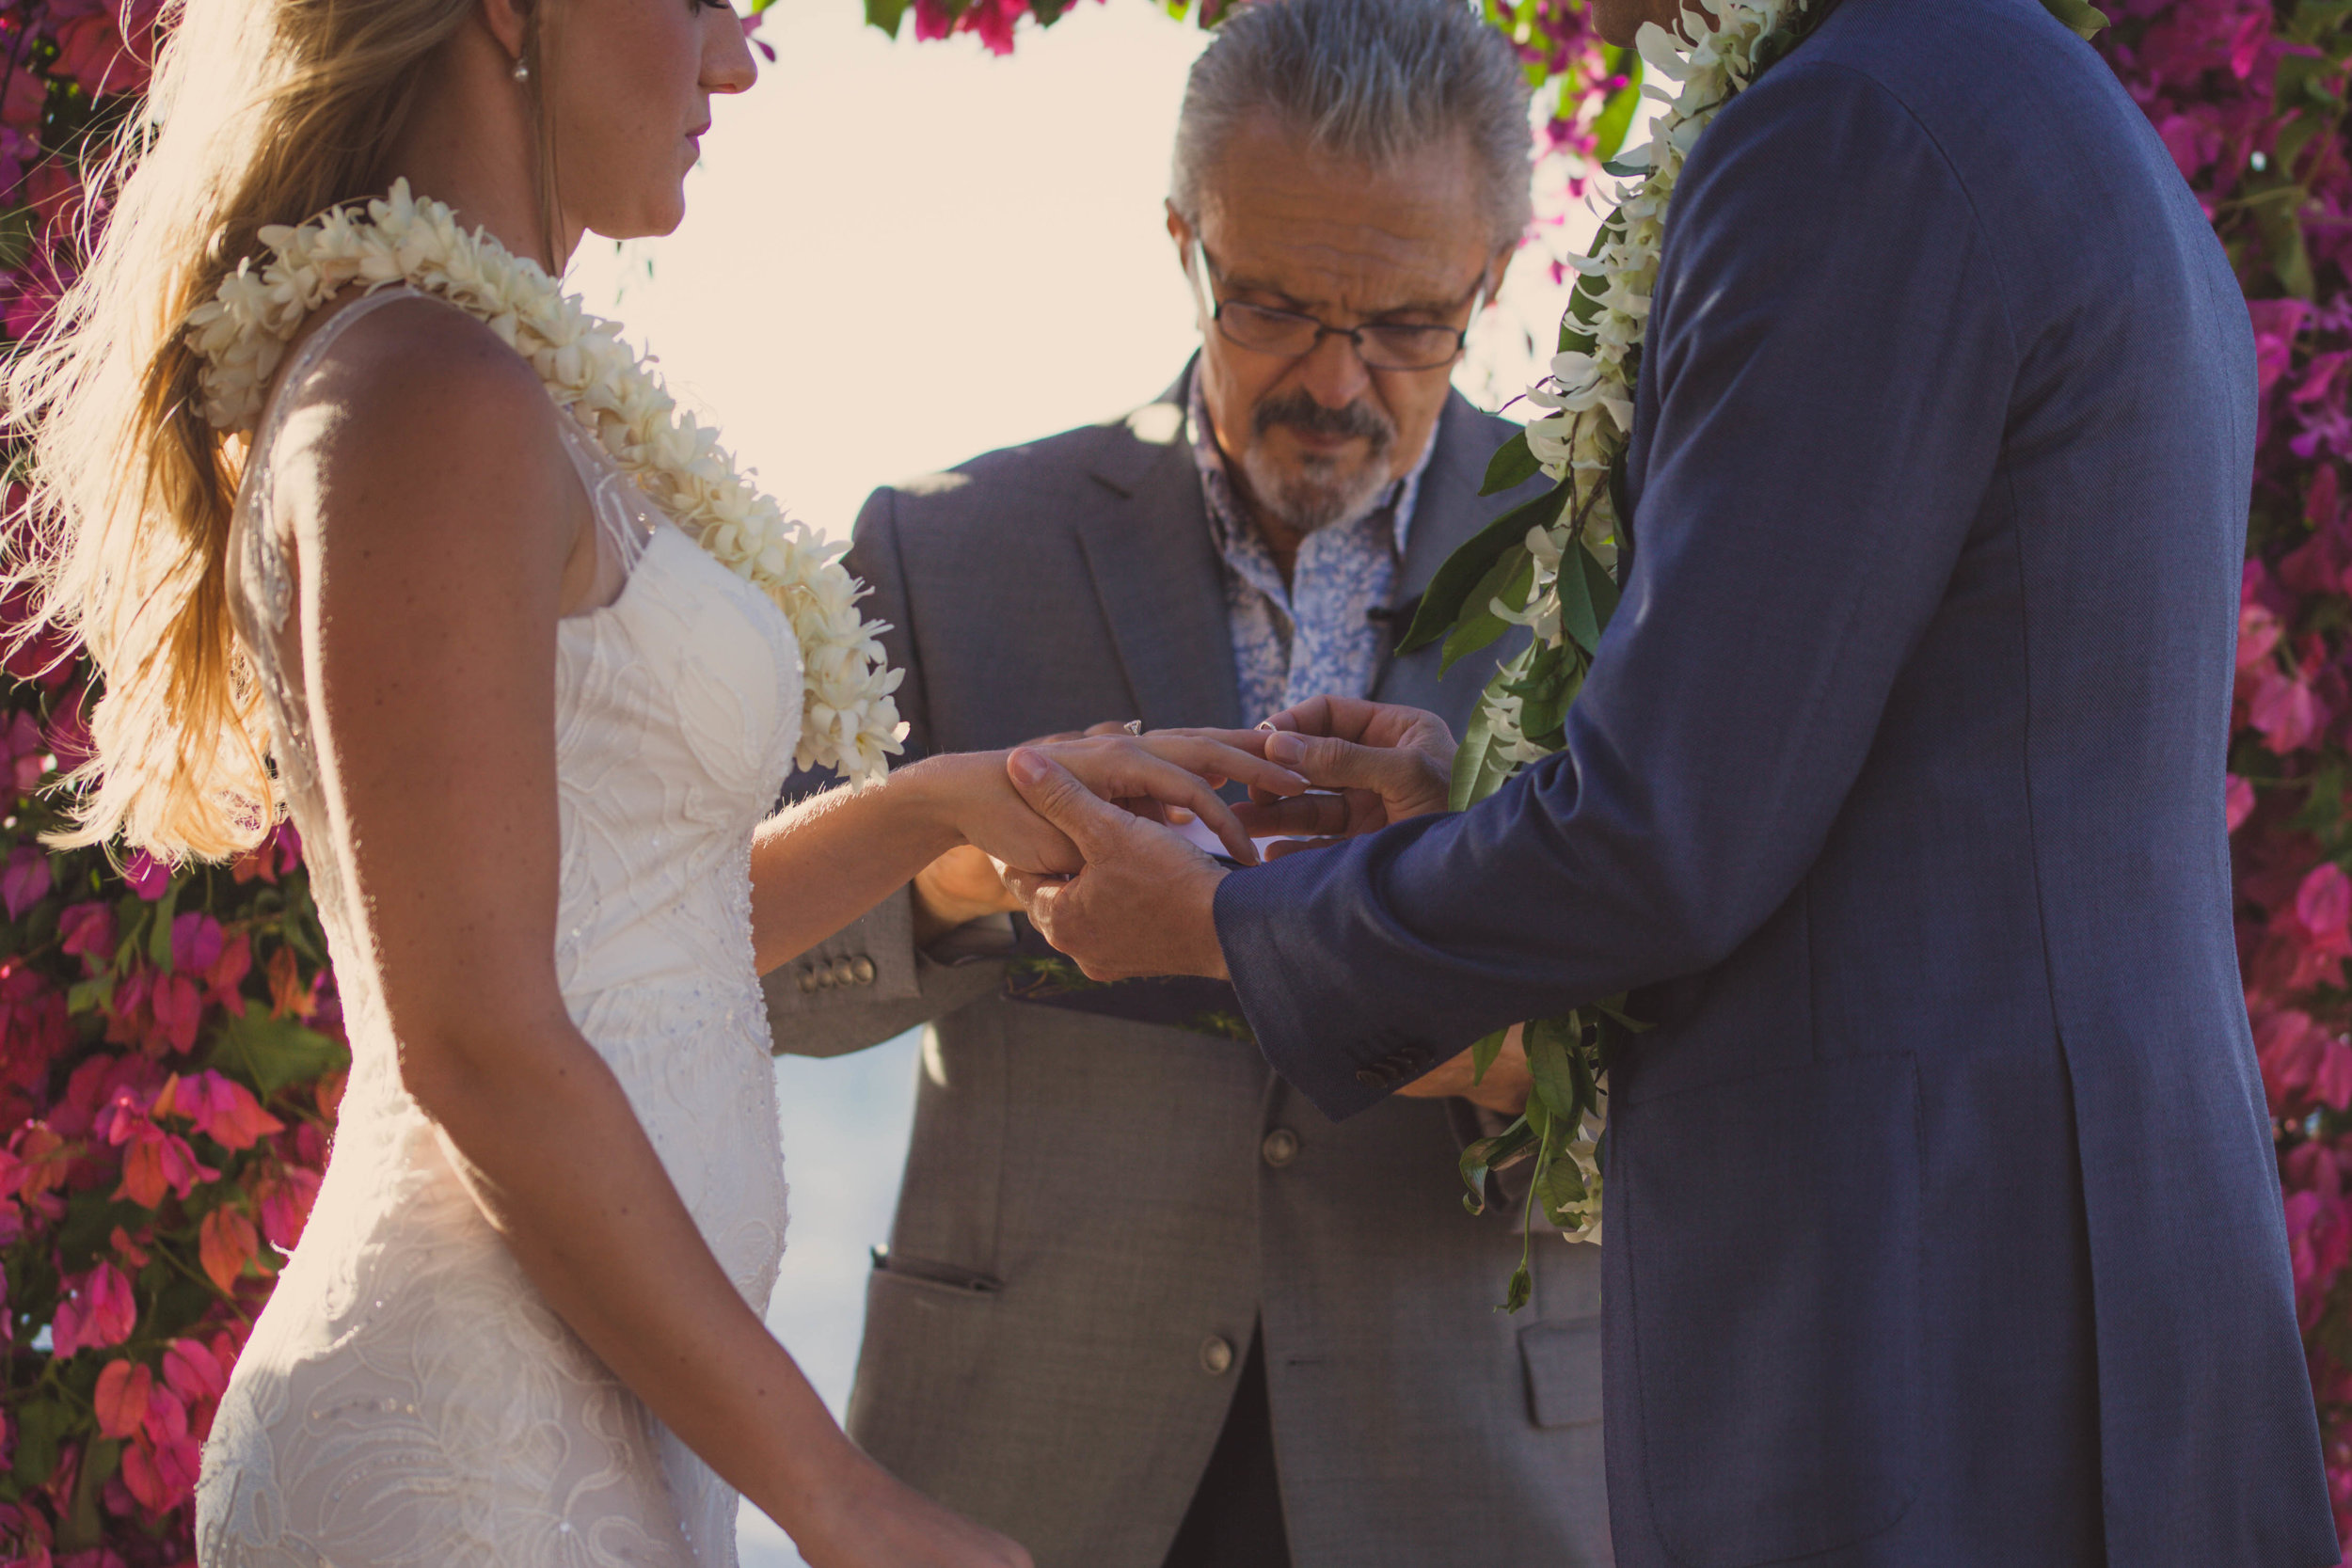 big island hawaii fairmont orchid beach wedding © kelilina photography 20170812174550-1.jpg